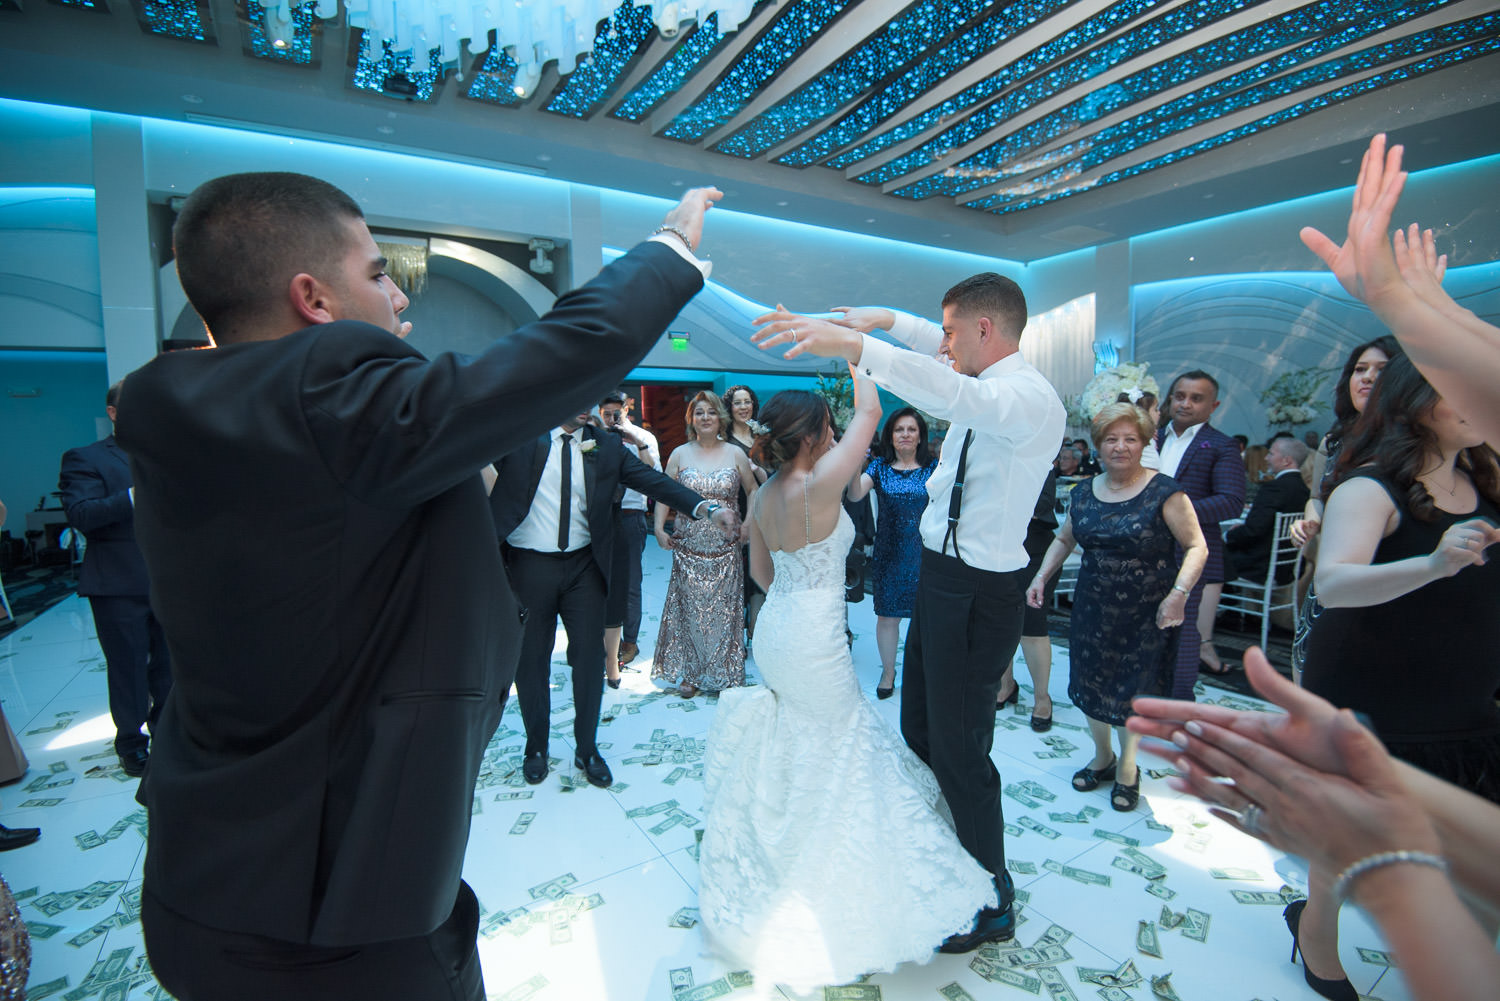 metropol ballroom - bride and groom dancing to pre-recorded music